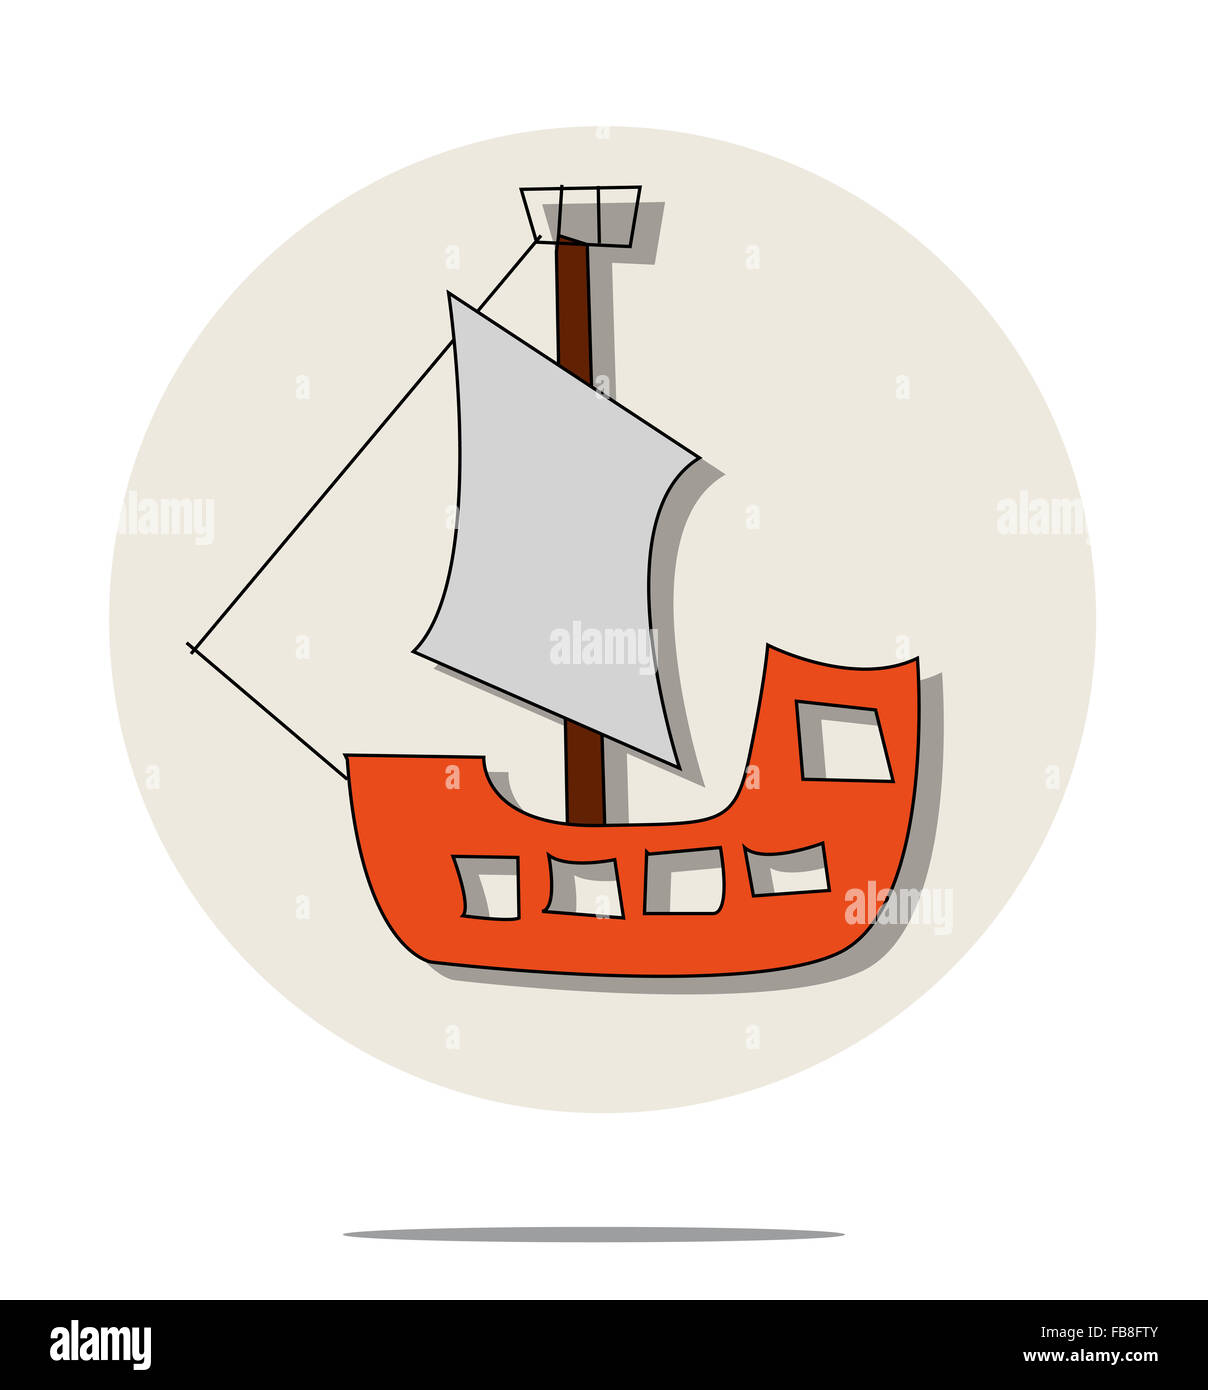 hight resolution of illustration of red pirate ship